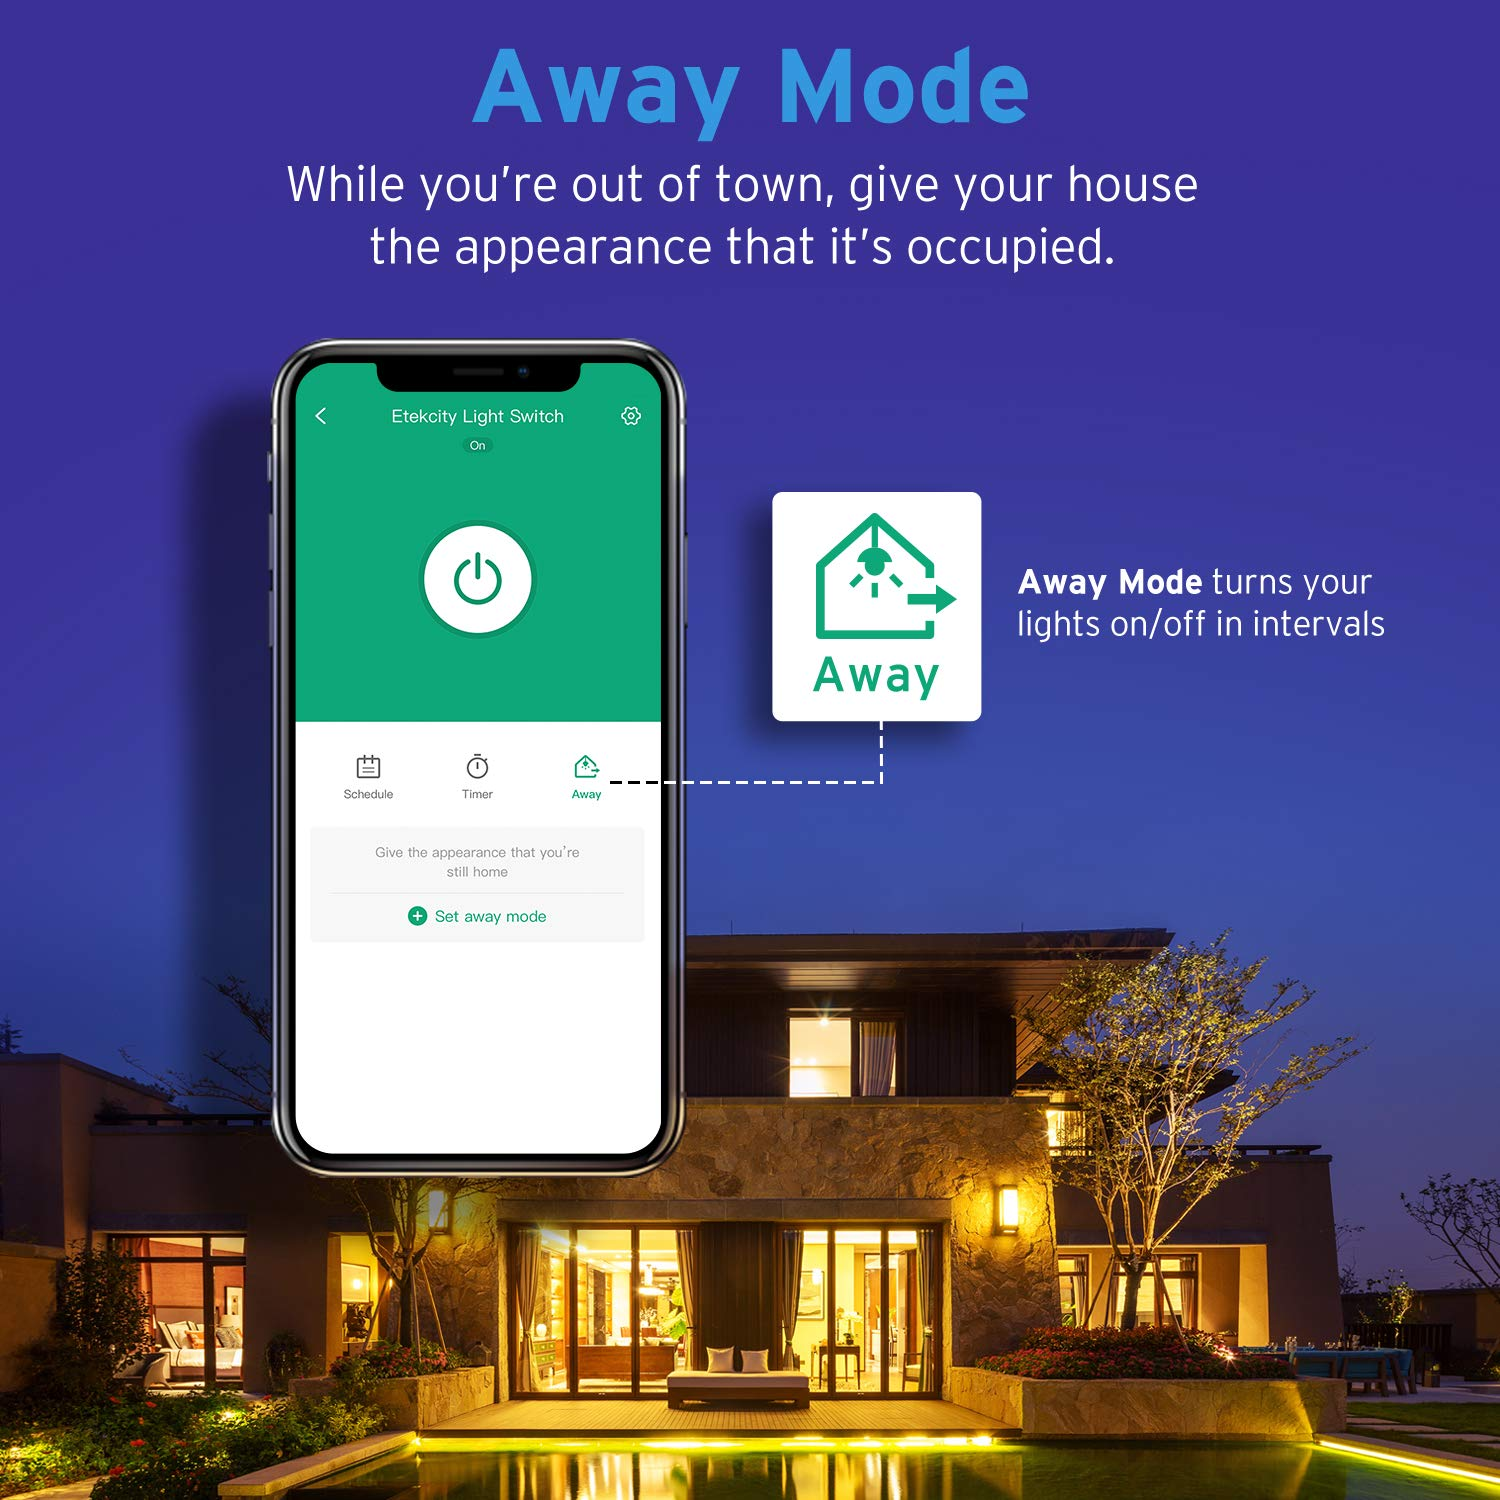 Etekcity Smart WiFi Light Switch, Wireless Remote Control from Anywhere, Schedule Your Home, No Hub Required, Works with Alexa and Google Home, Single Pole Only, White, 15A/1800W, ETL Listed by Etekcity (Image #8)